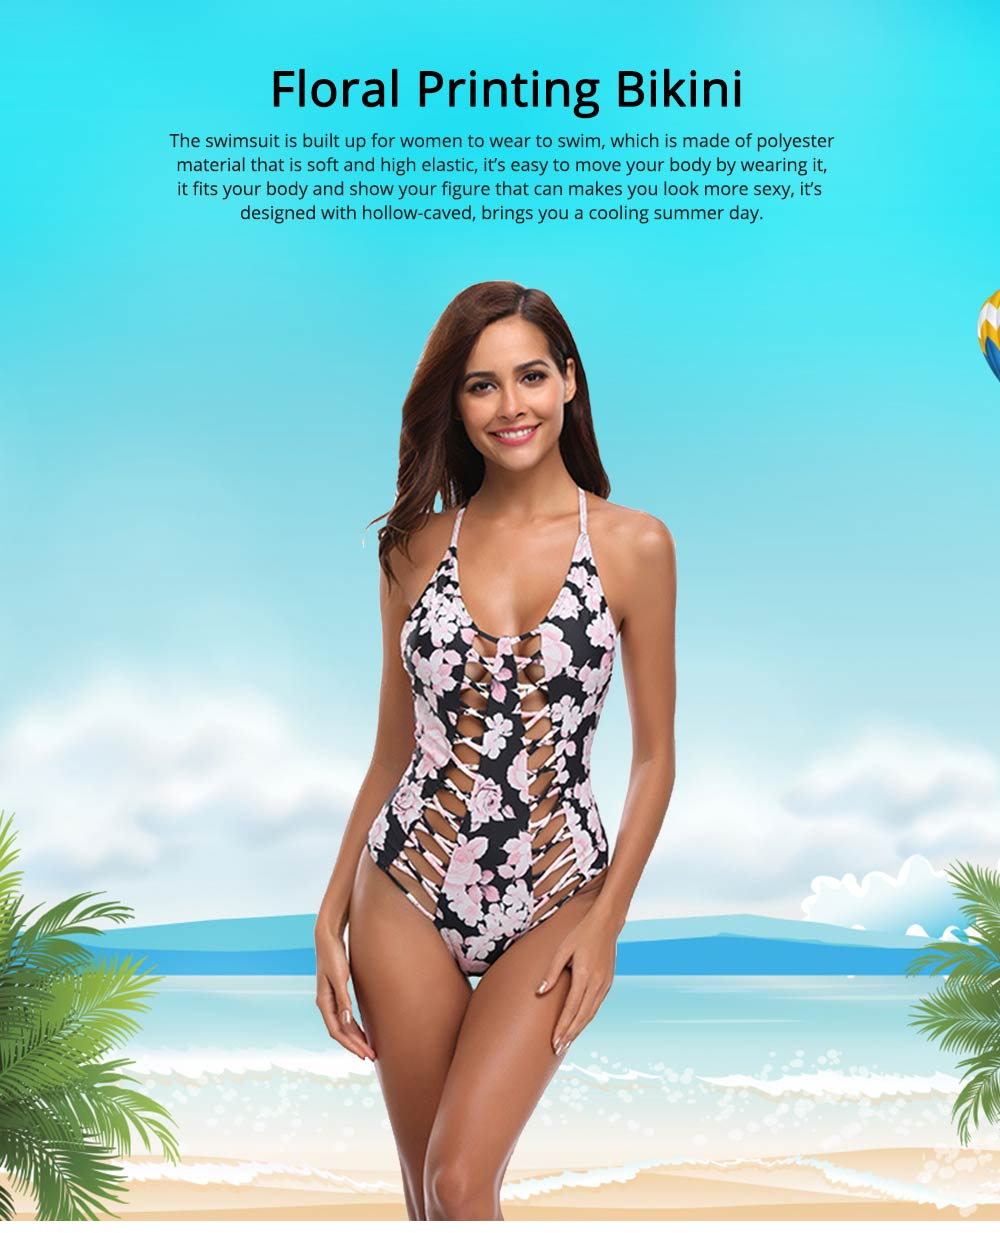 Polyester Material Swimsuit with Floral Printing Bikini for Women Bathing Suit Romper Style Summer Swimwear 0